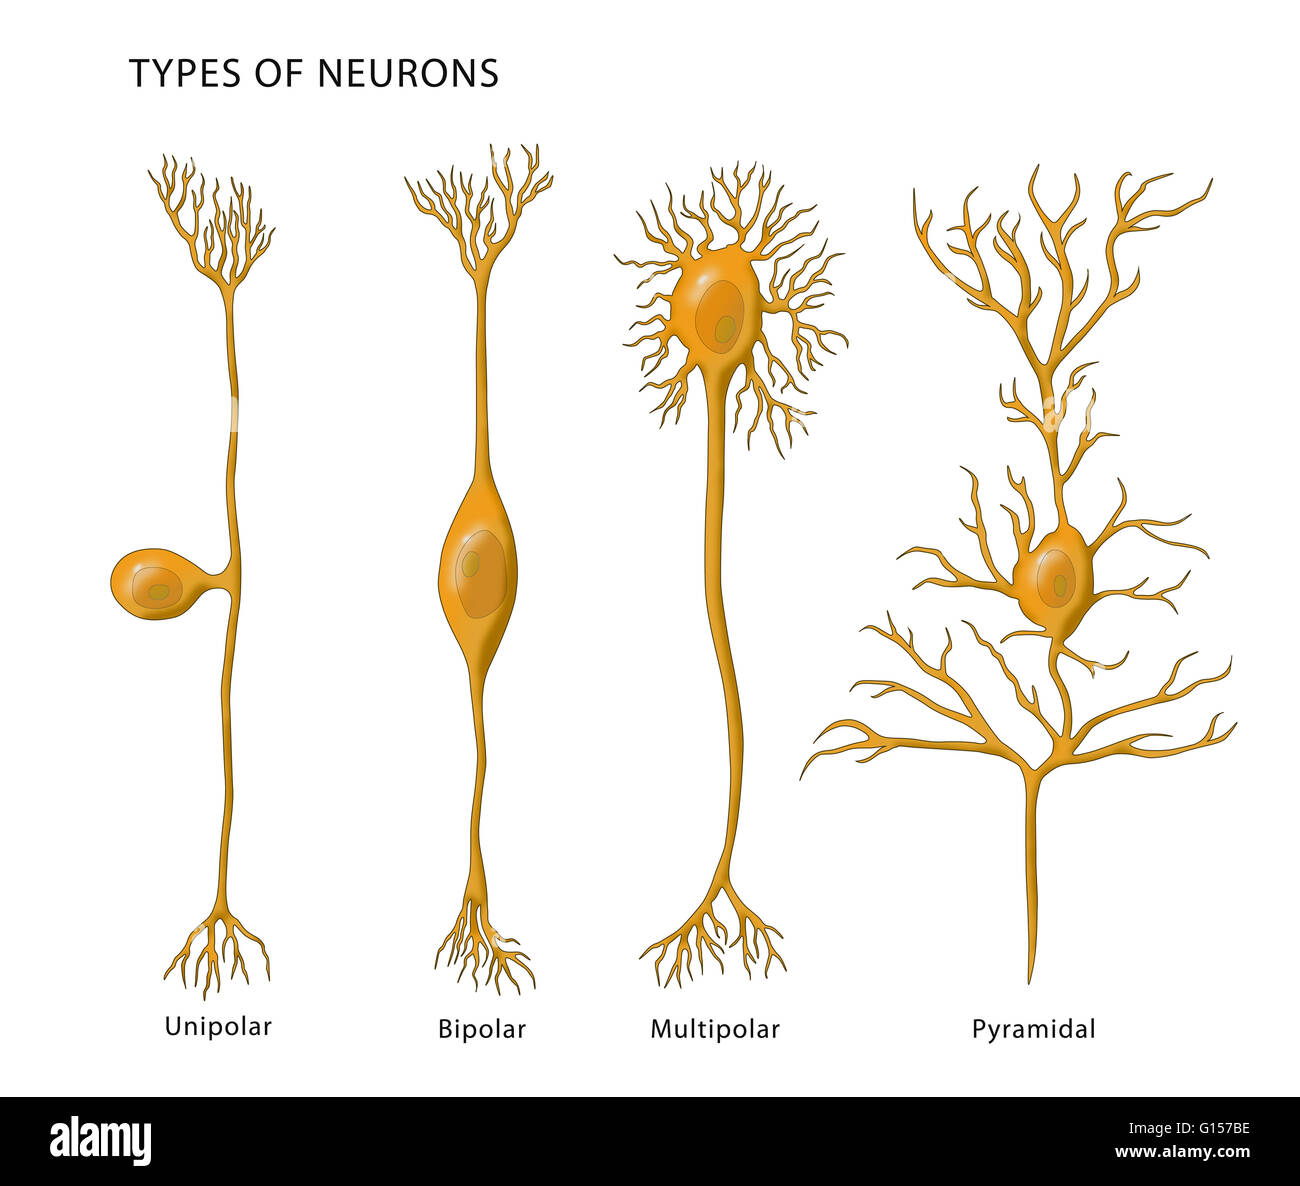 Illustration showing the 4 types of neurons. From left to right ...